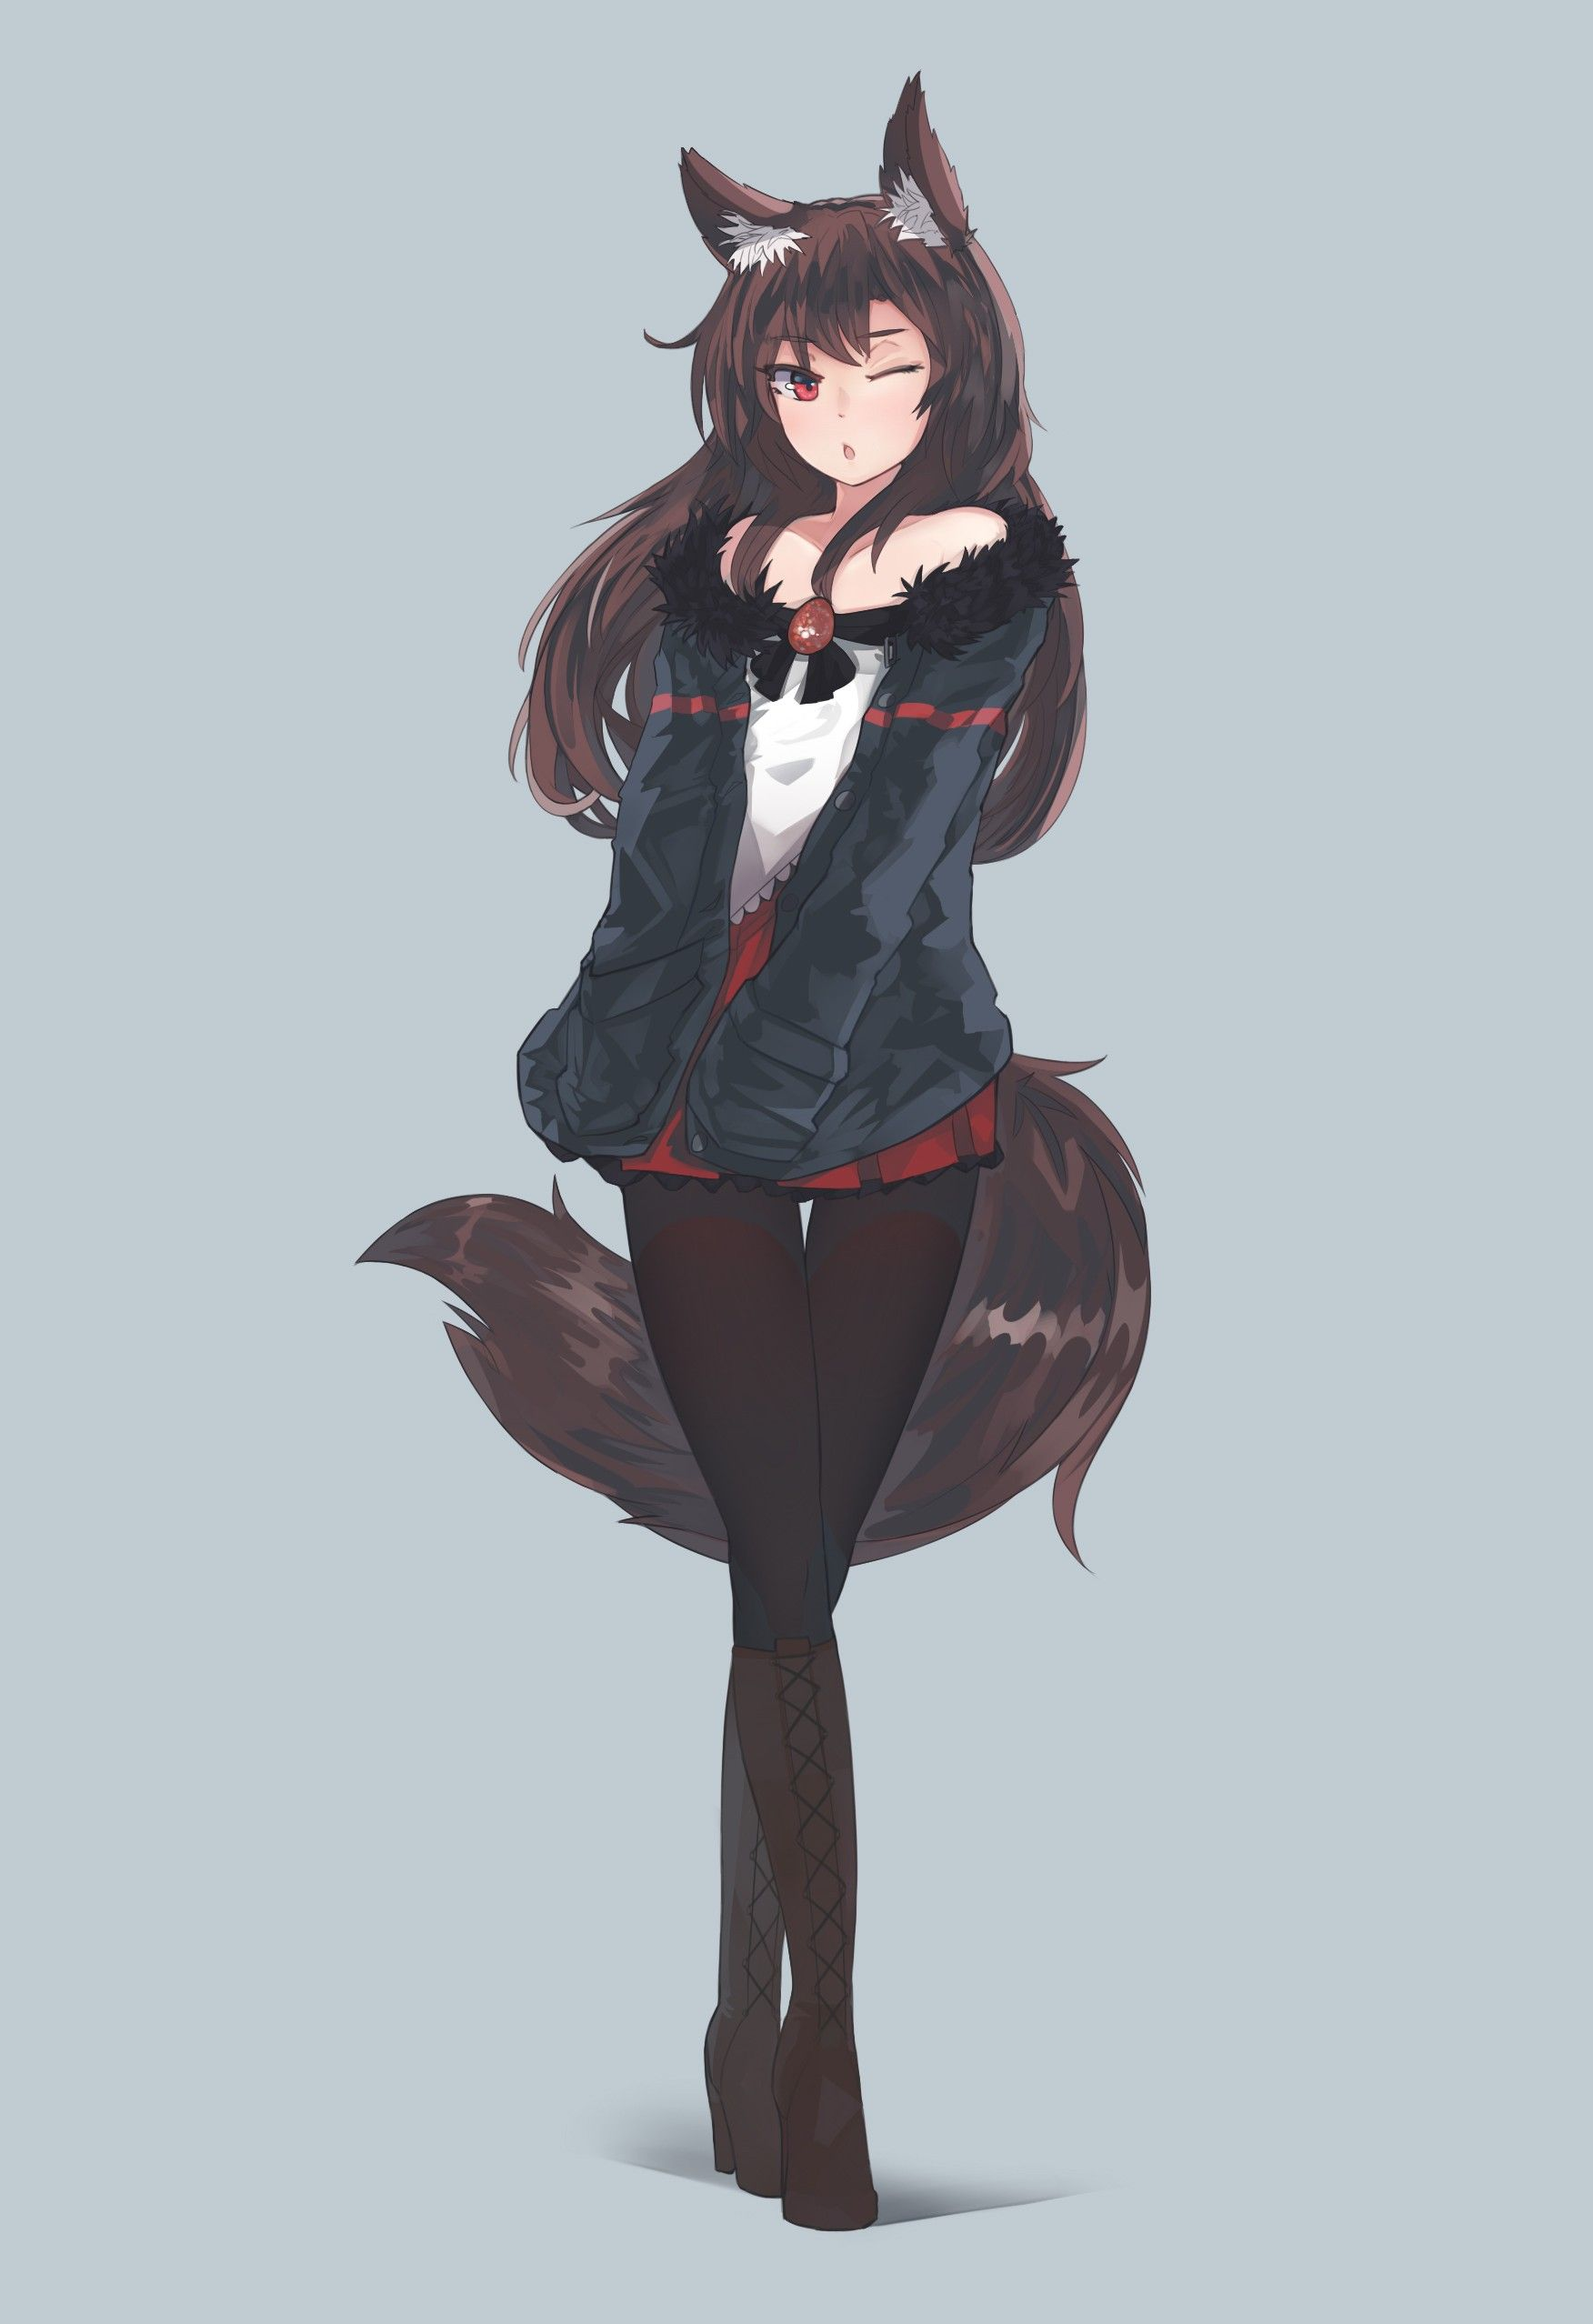 Anime 1752x2556 anime anime girls imaizumi kagerou tail long hair animal ears red eyes brunette skirt touhou